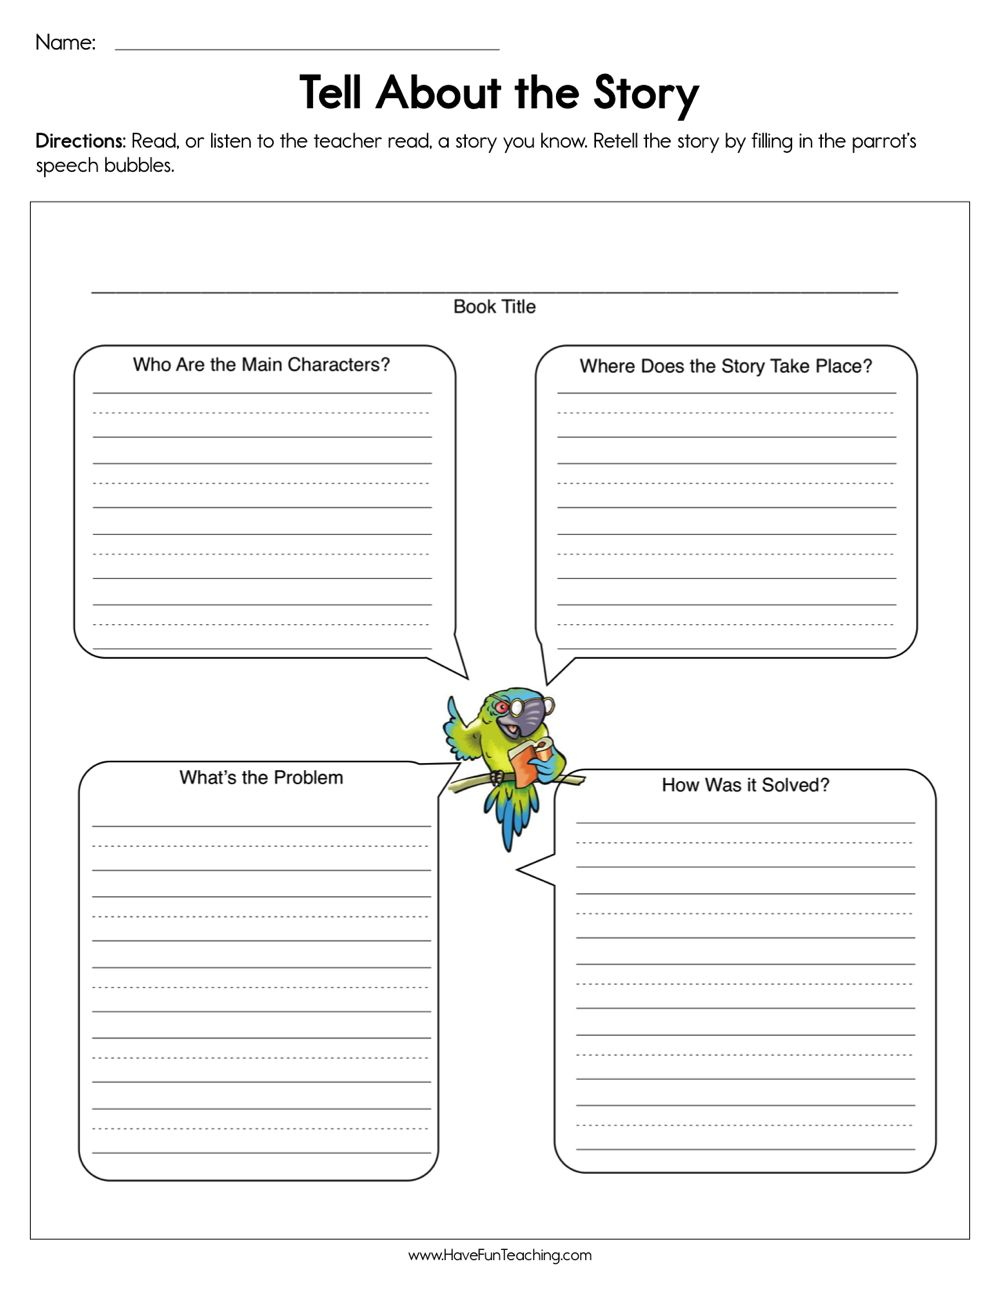 Tell About the Story Worksheet Reading comprehension